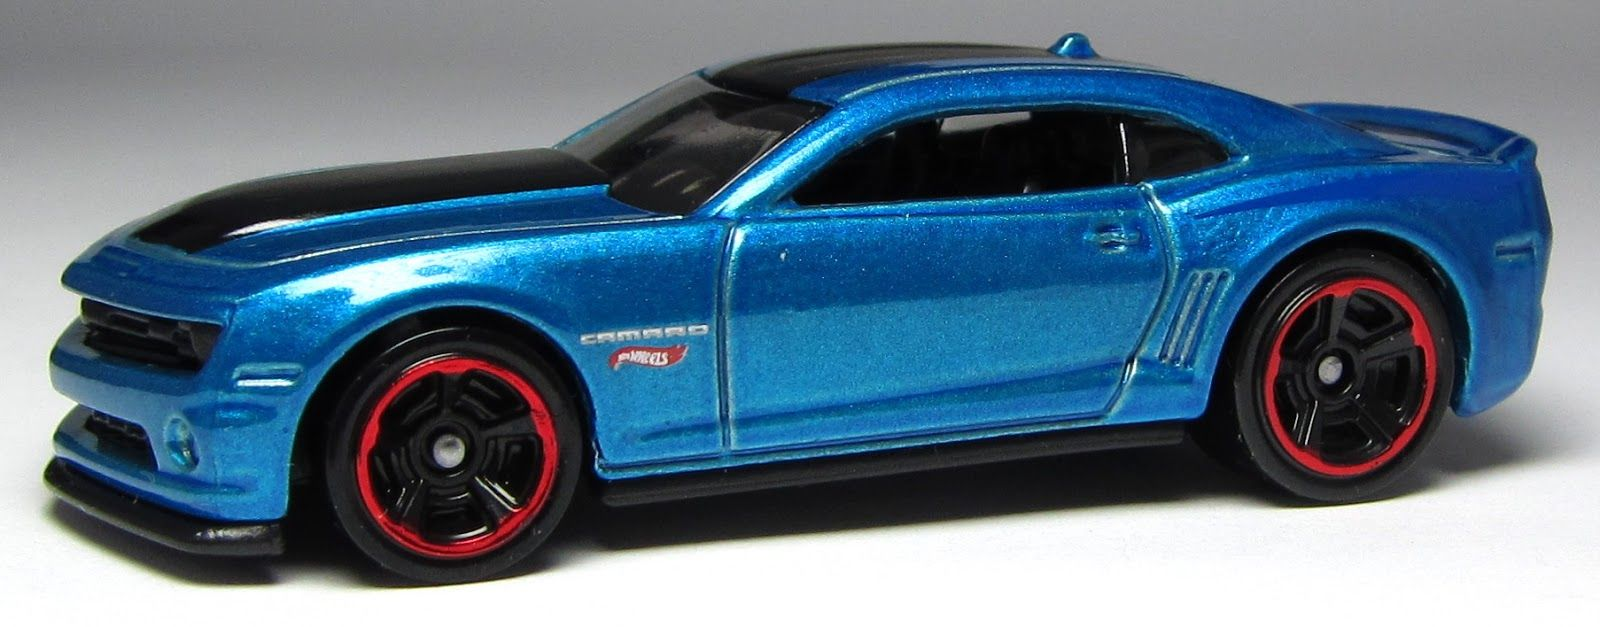 First Look 2013 Hot Wheels Special Edition Chevy Camaro And A